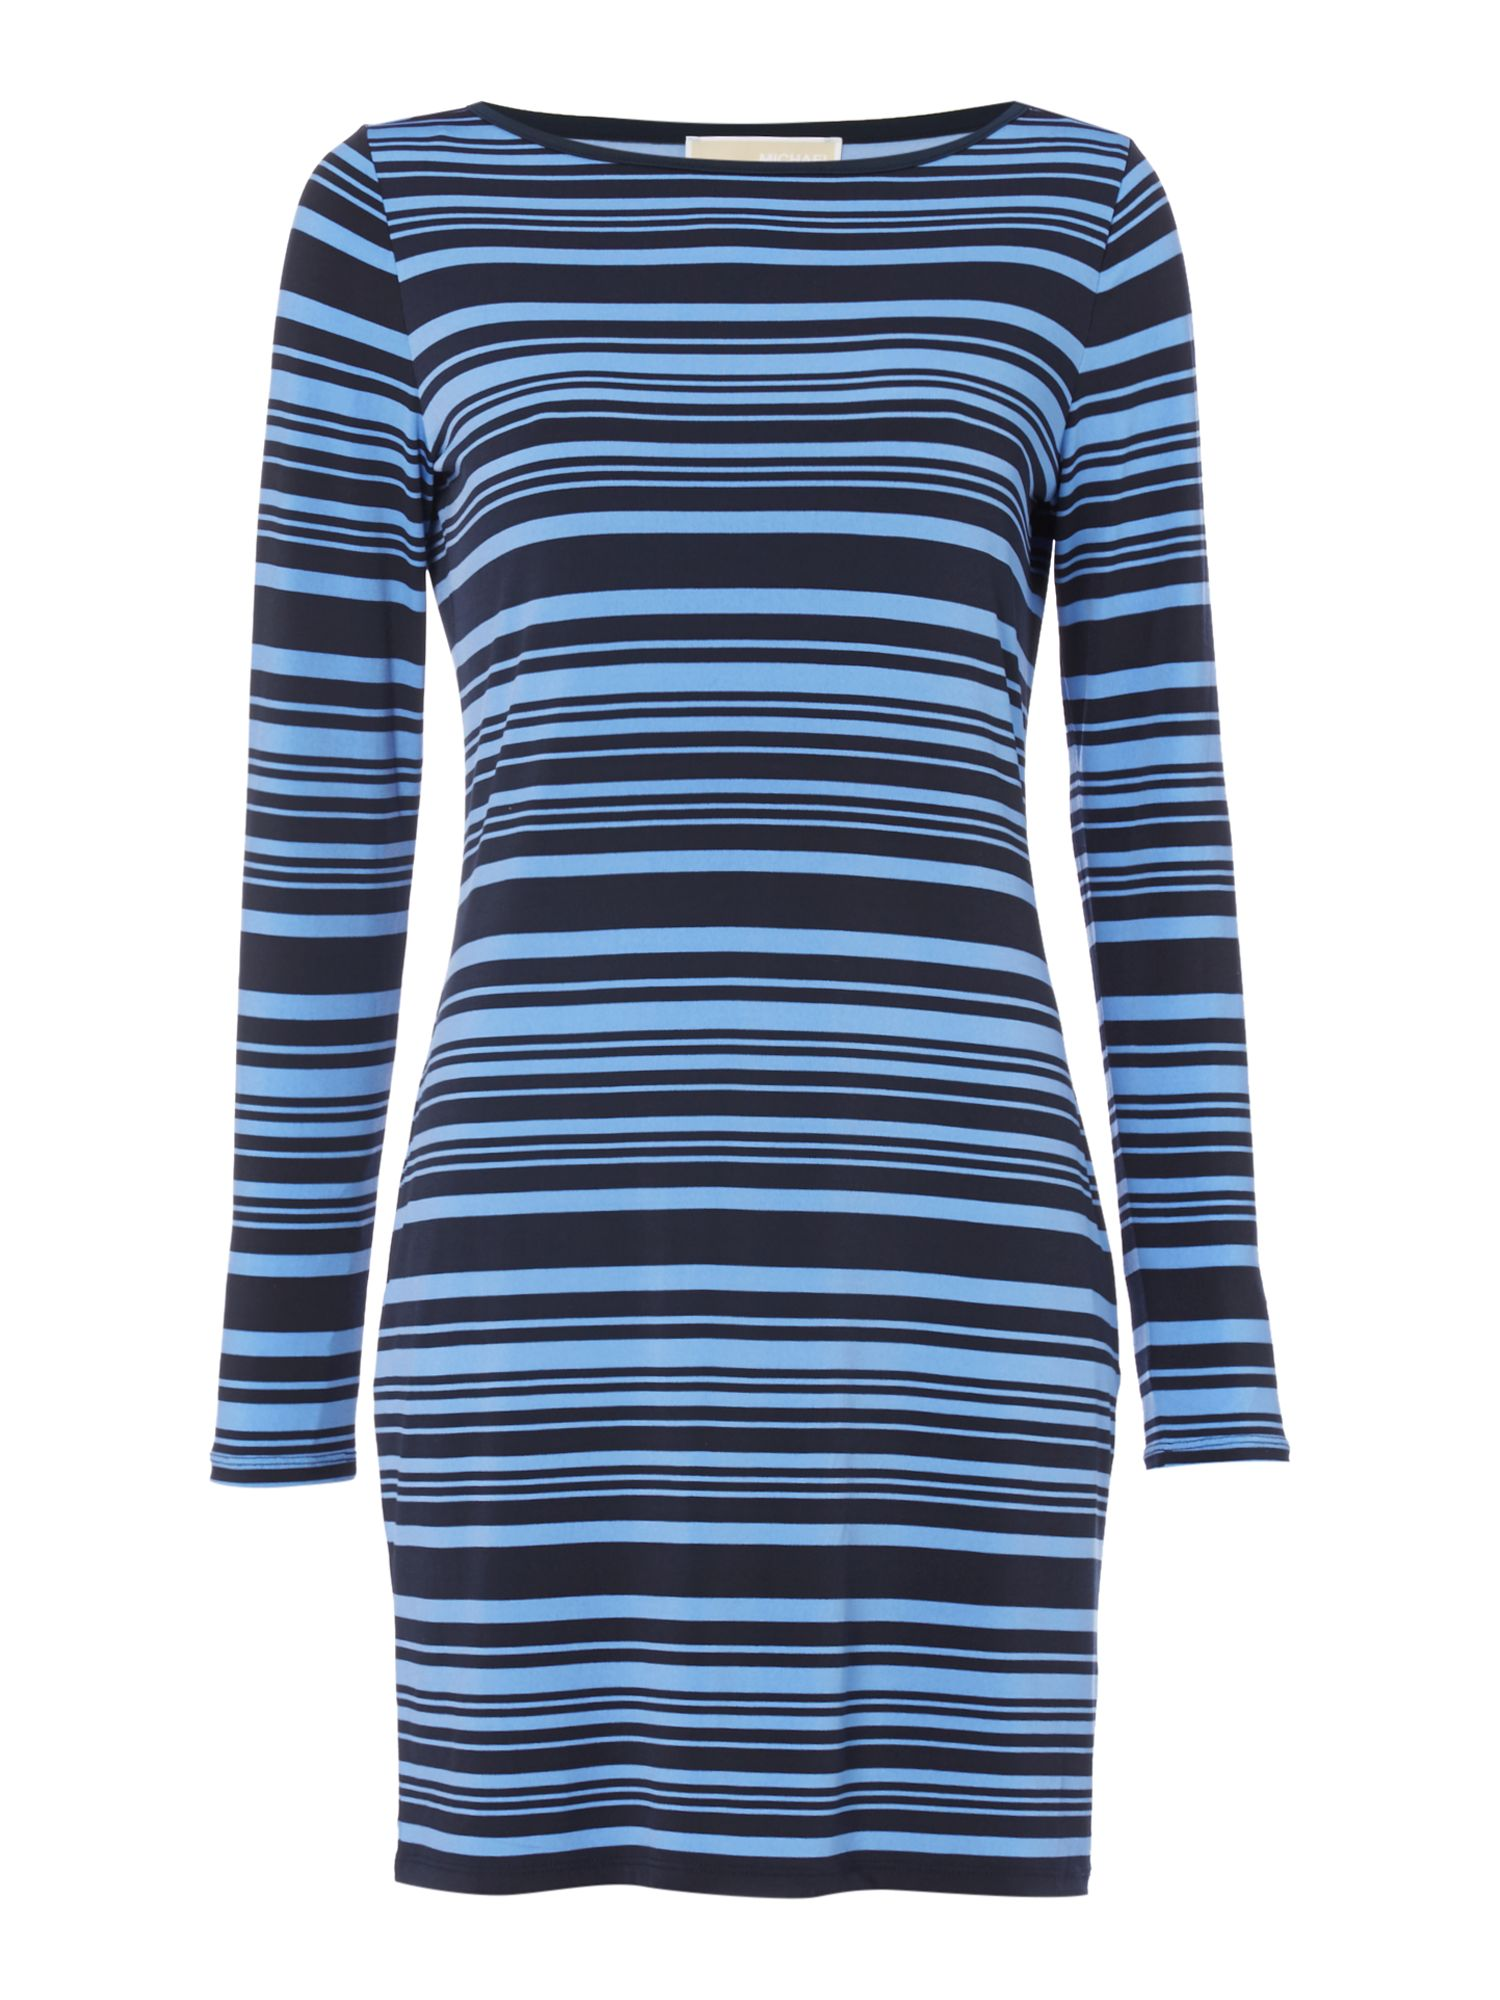 Michael Kors Longsleeve Striped Tunic Dress, Blue